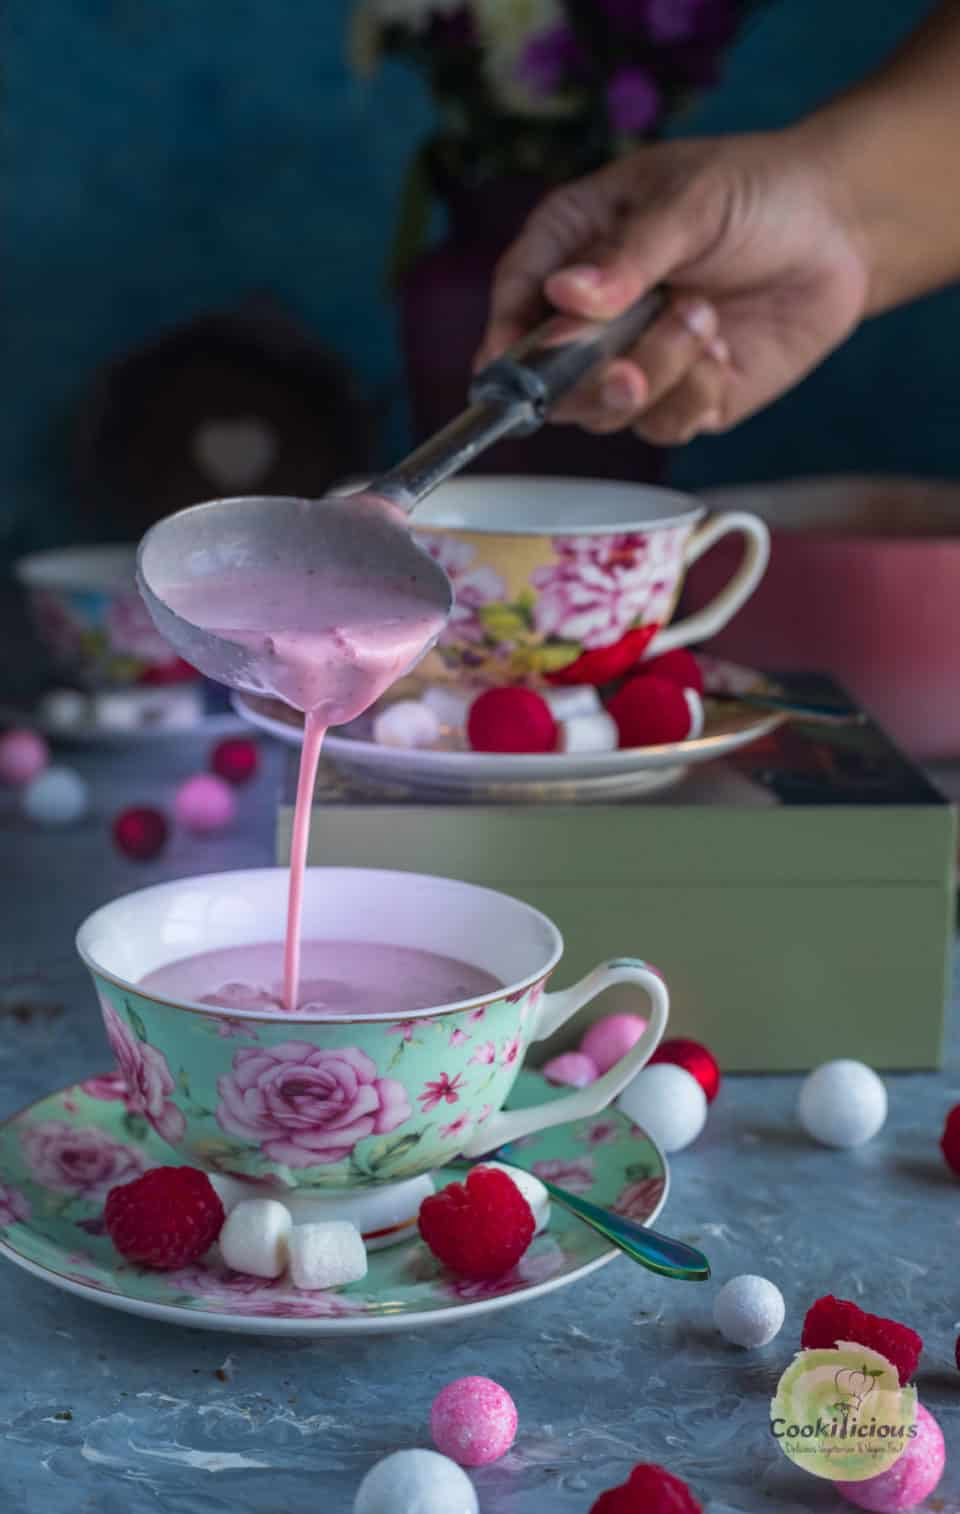 a hand pouring Vegan Raspberry Rose Hot Chocolate into a teacup